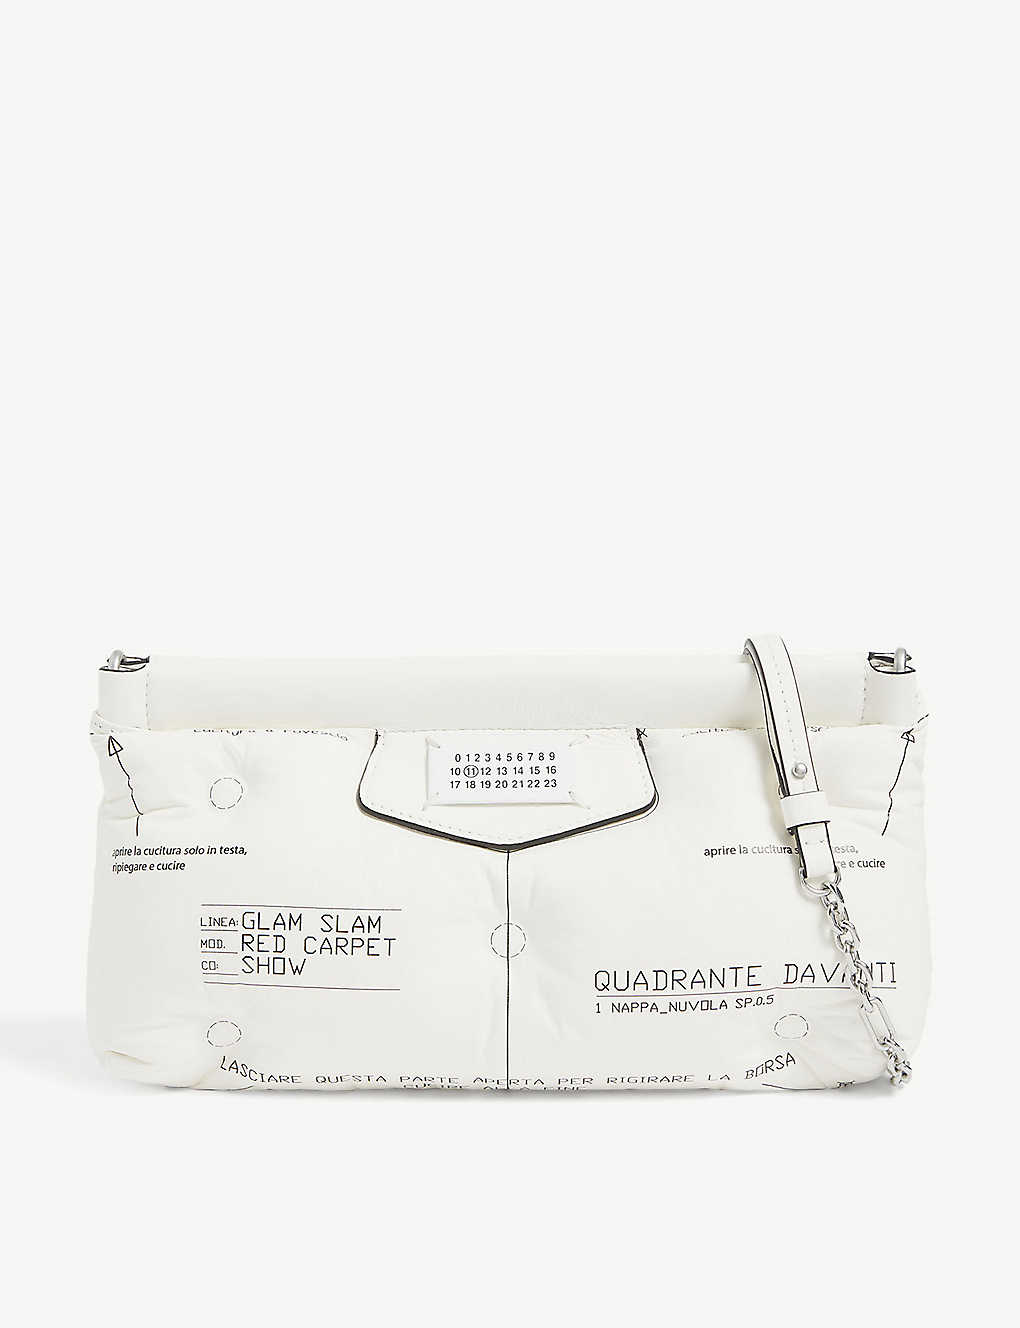 Maison Margiela GLAM SLAM RED CARPET LEATHER SHOULDER BAG